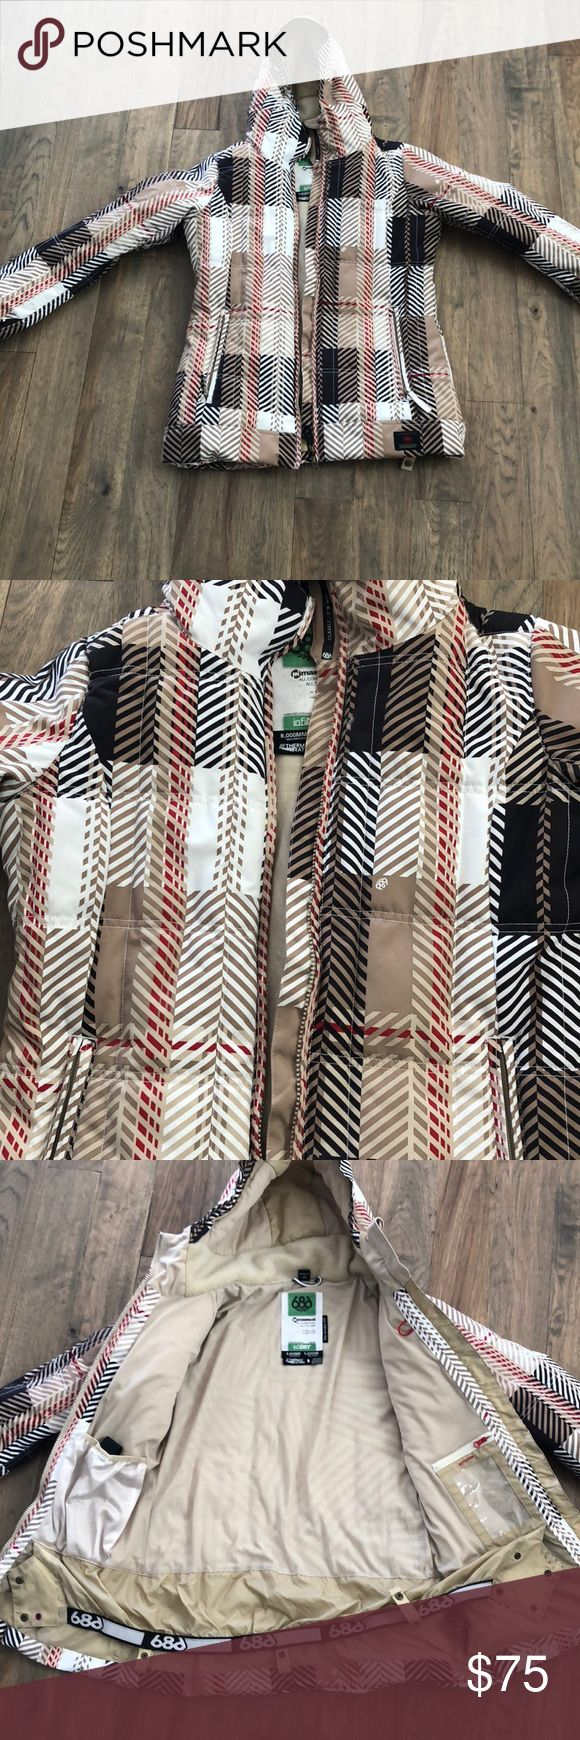 686 Ski Snowboarding Coat Burberry Print- Small Women's size small 686 snowboarding skiiing coat. Infidry material. Waterproof and breathable with a thermal rating of 9. Worn Once. Burberry Print. 686 Jackets & Coats Puffers